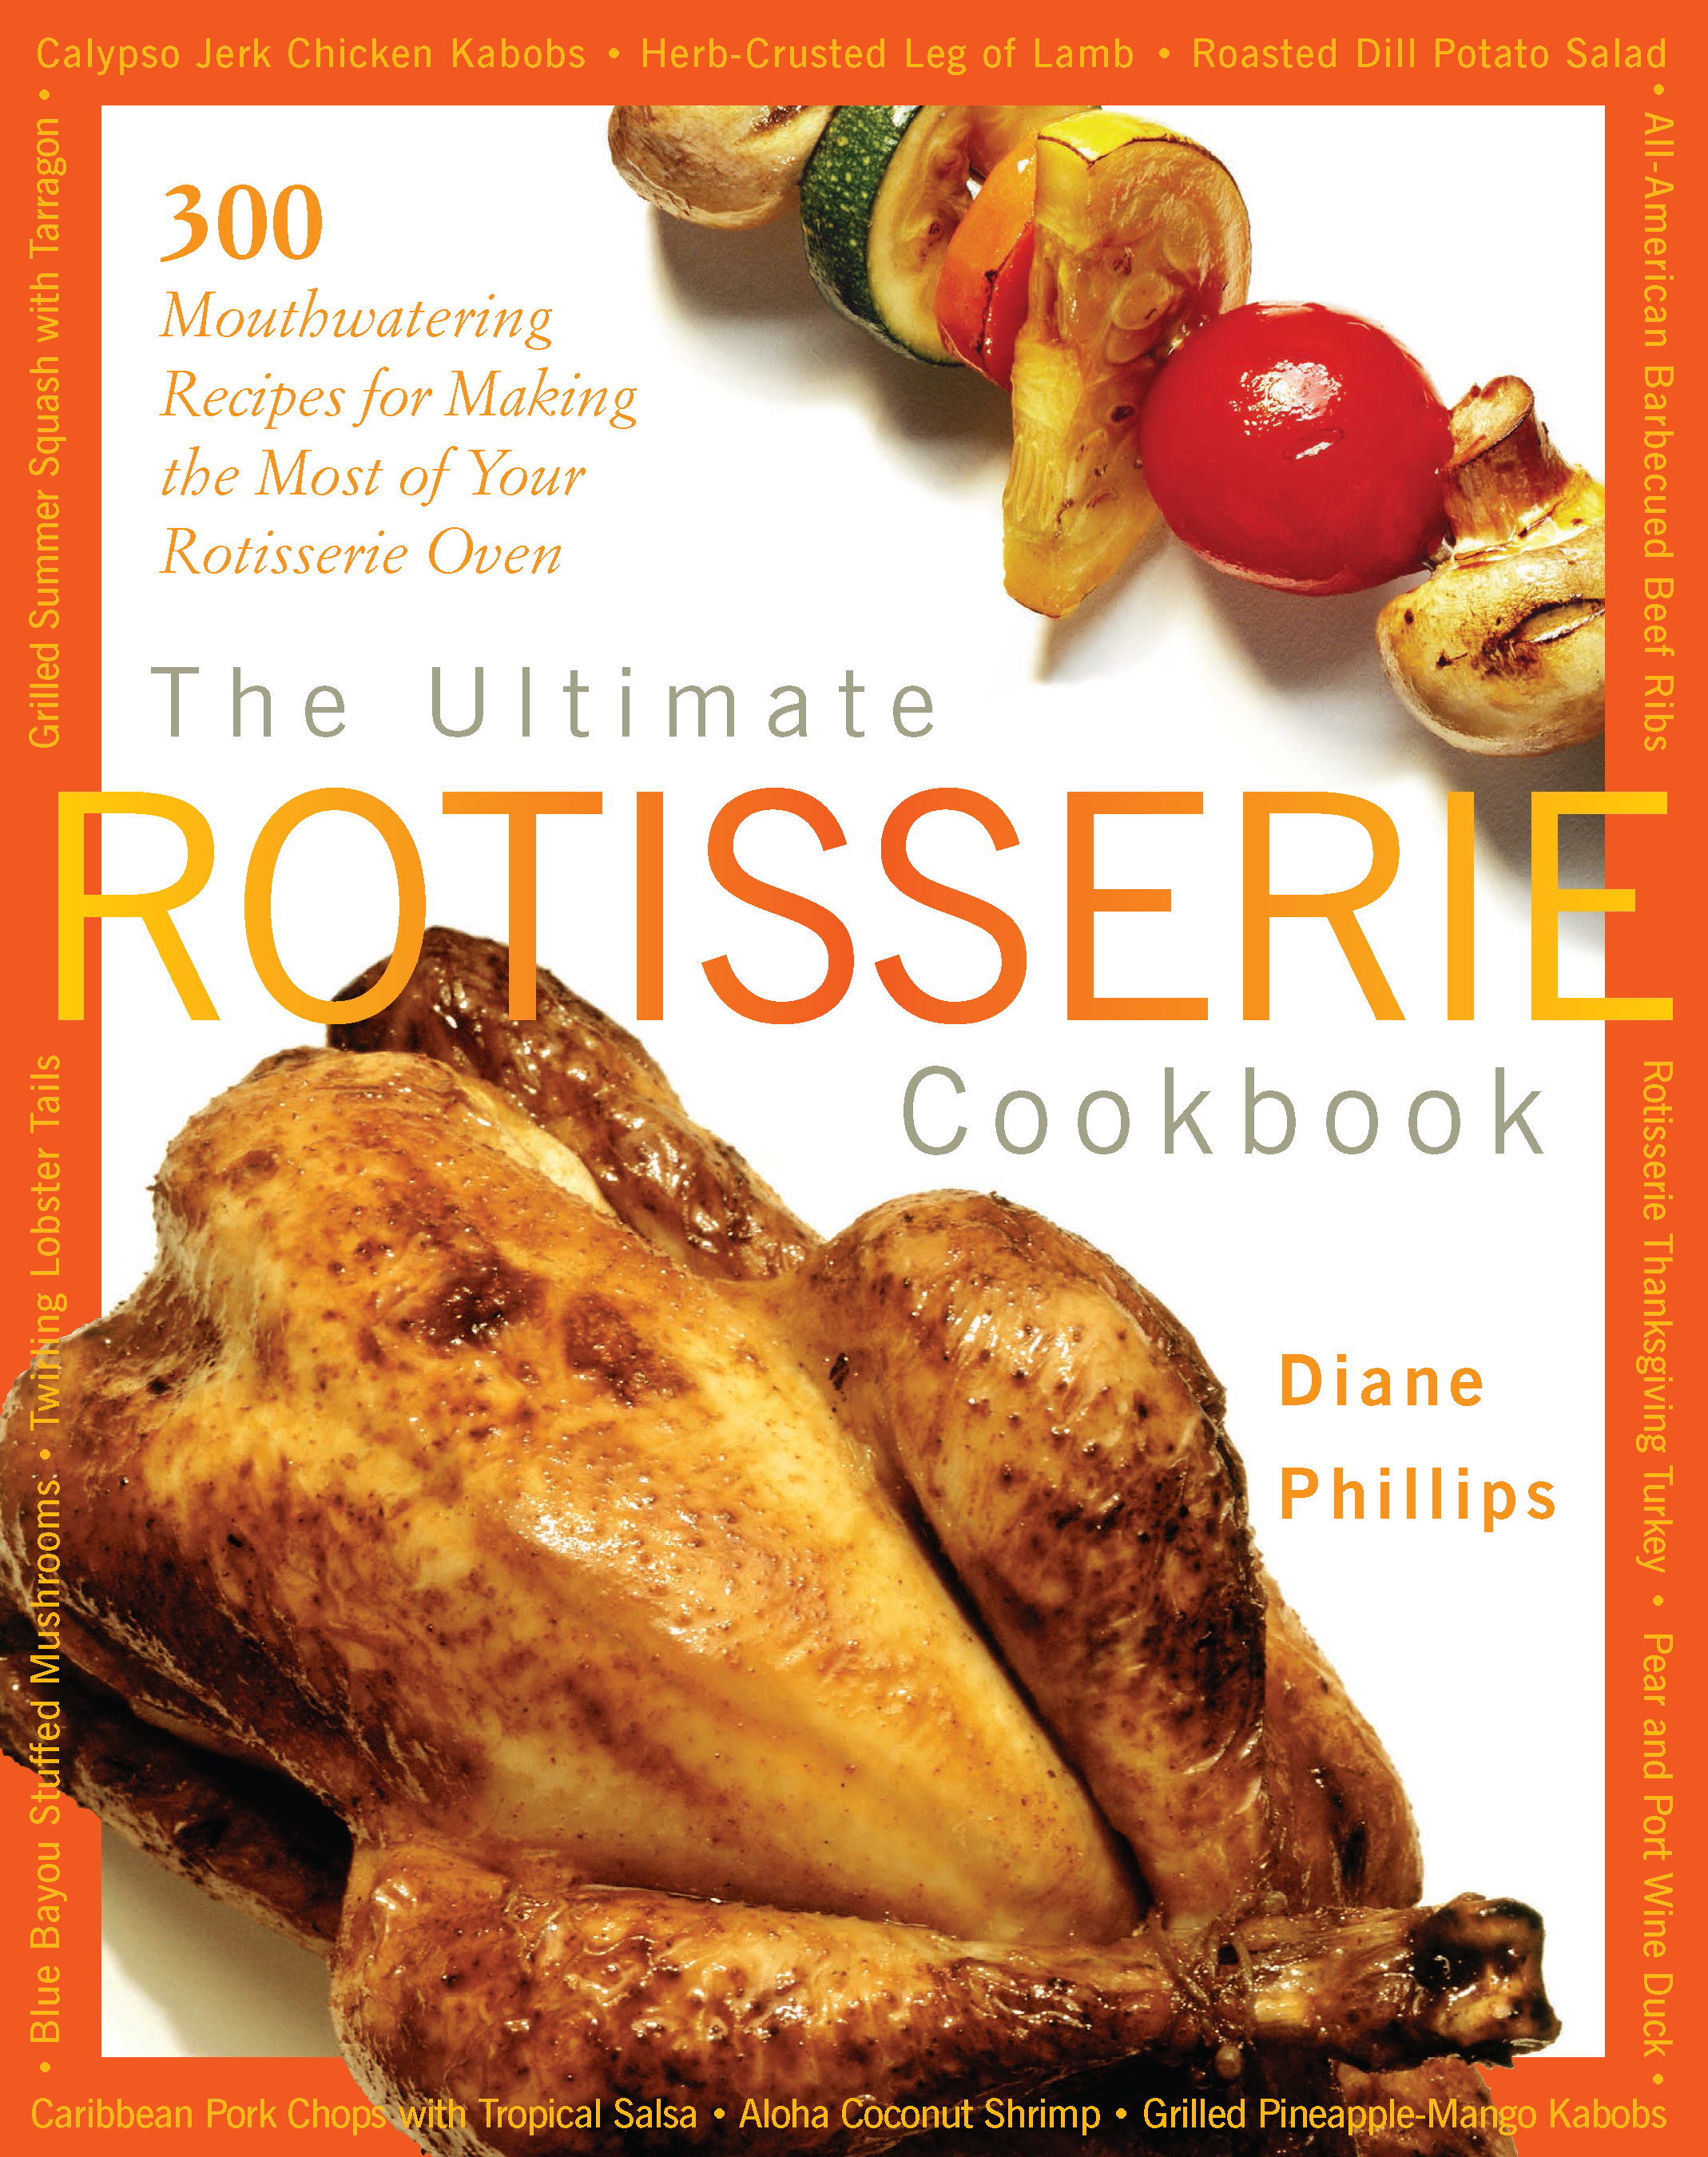 The Ultimate Rotisserie Cookbook By: Diane Phillips